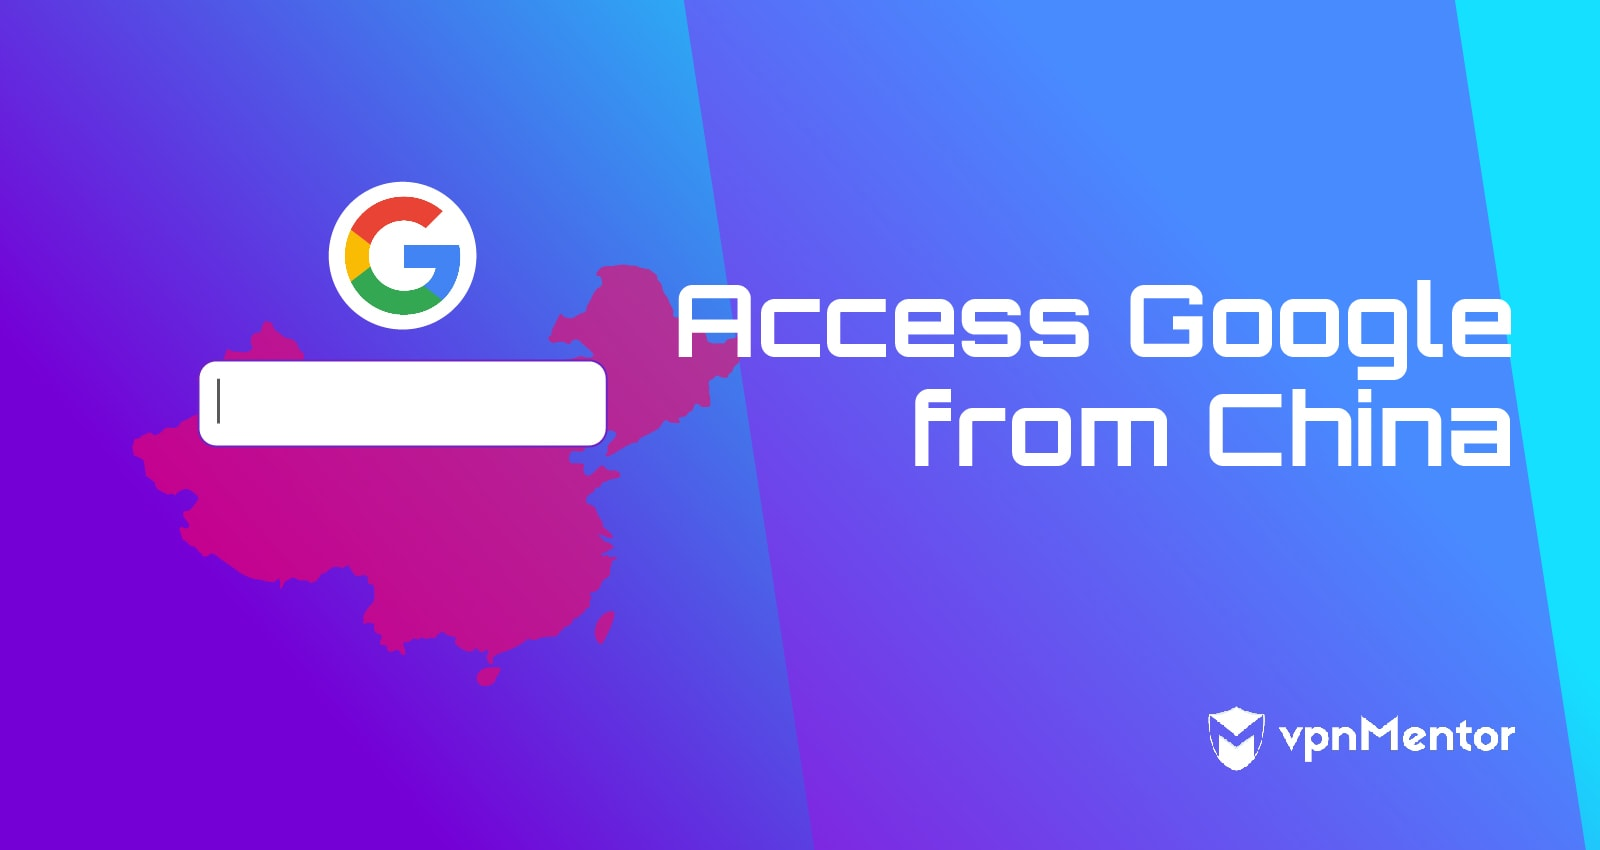 Access Google from China